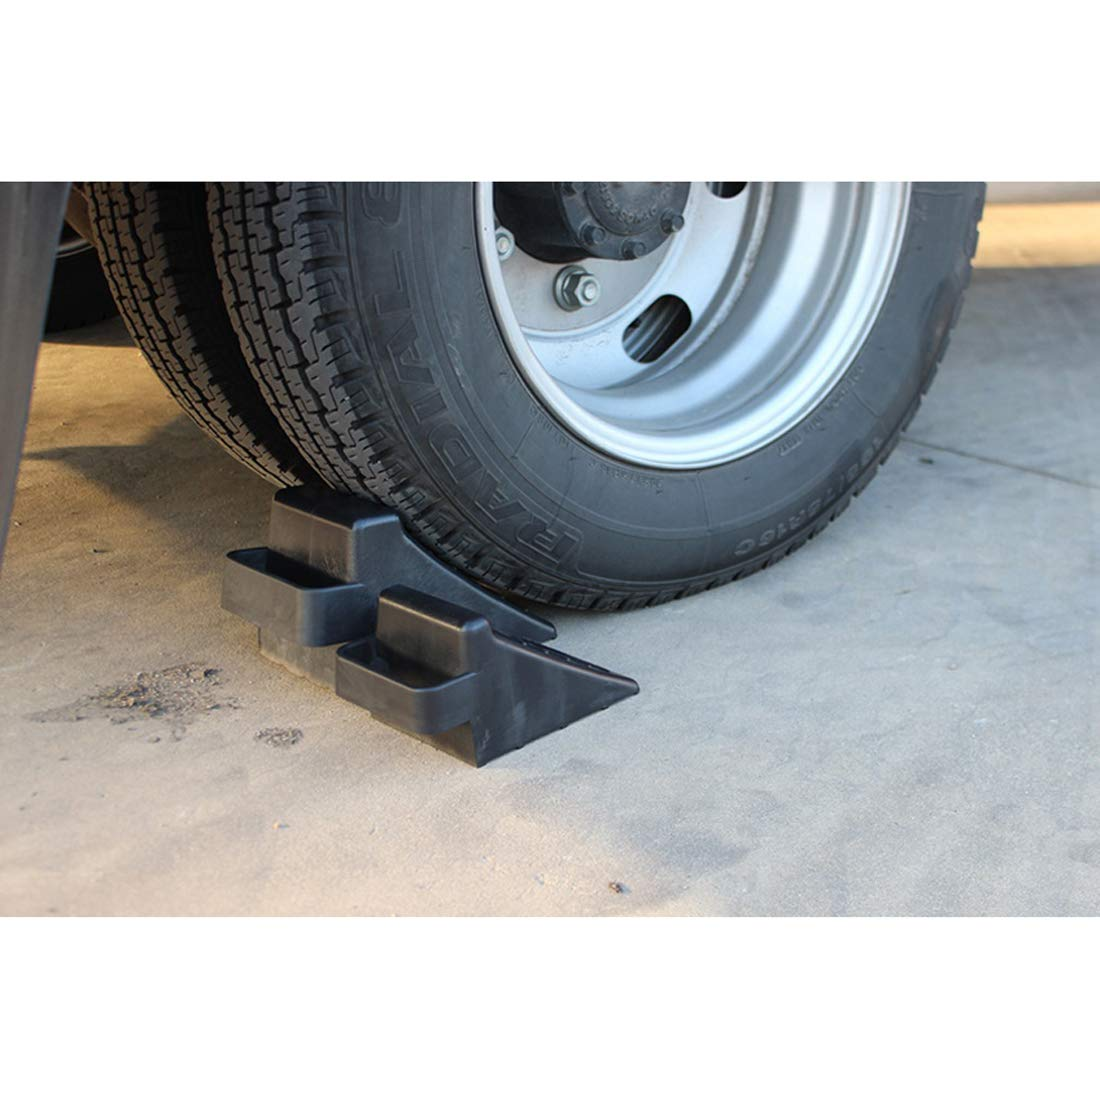 GB 2PCS of Tire Crutch Wheel Chocks for Car Truck Stopper Block Set (Large) by [GBOEM] (Image #6)